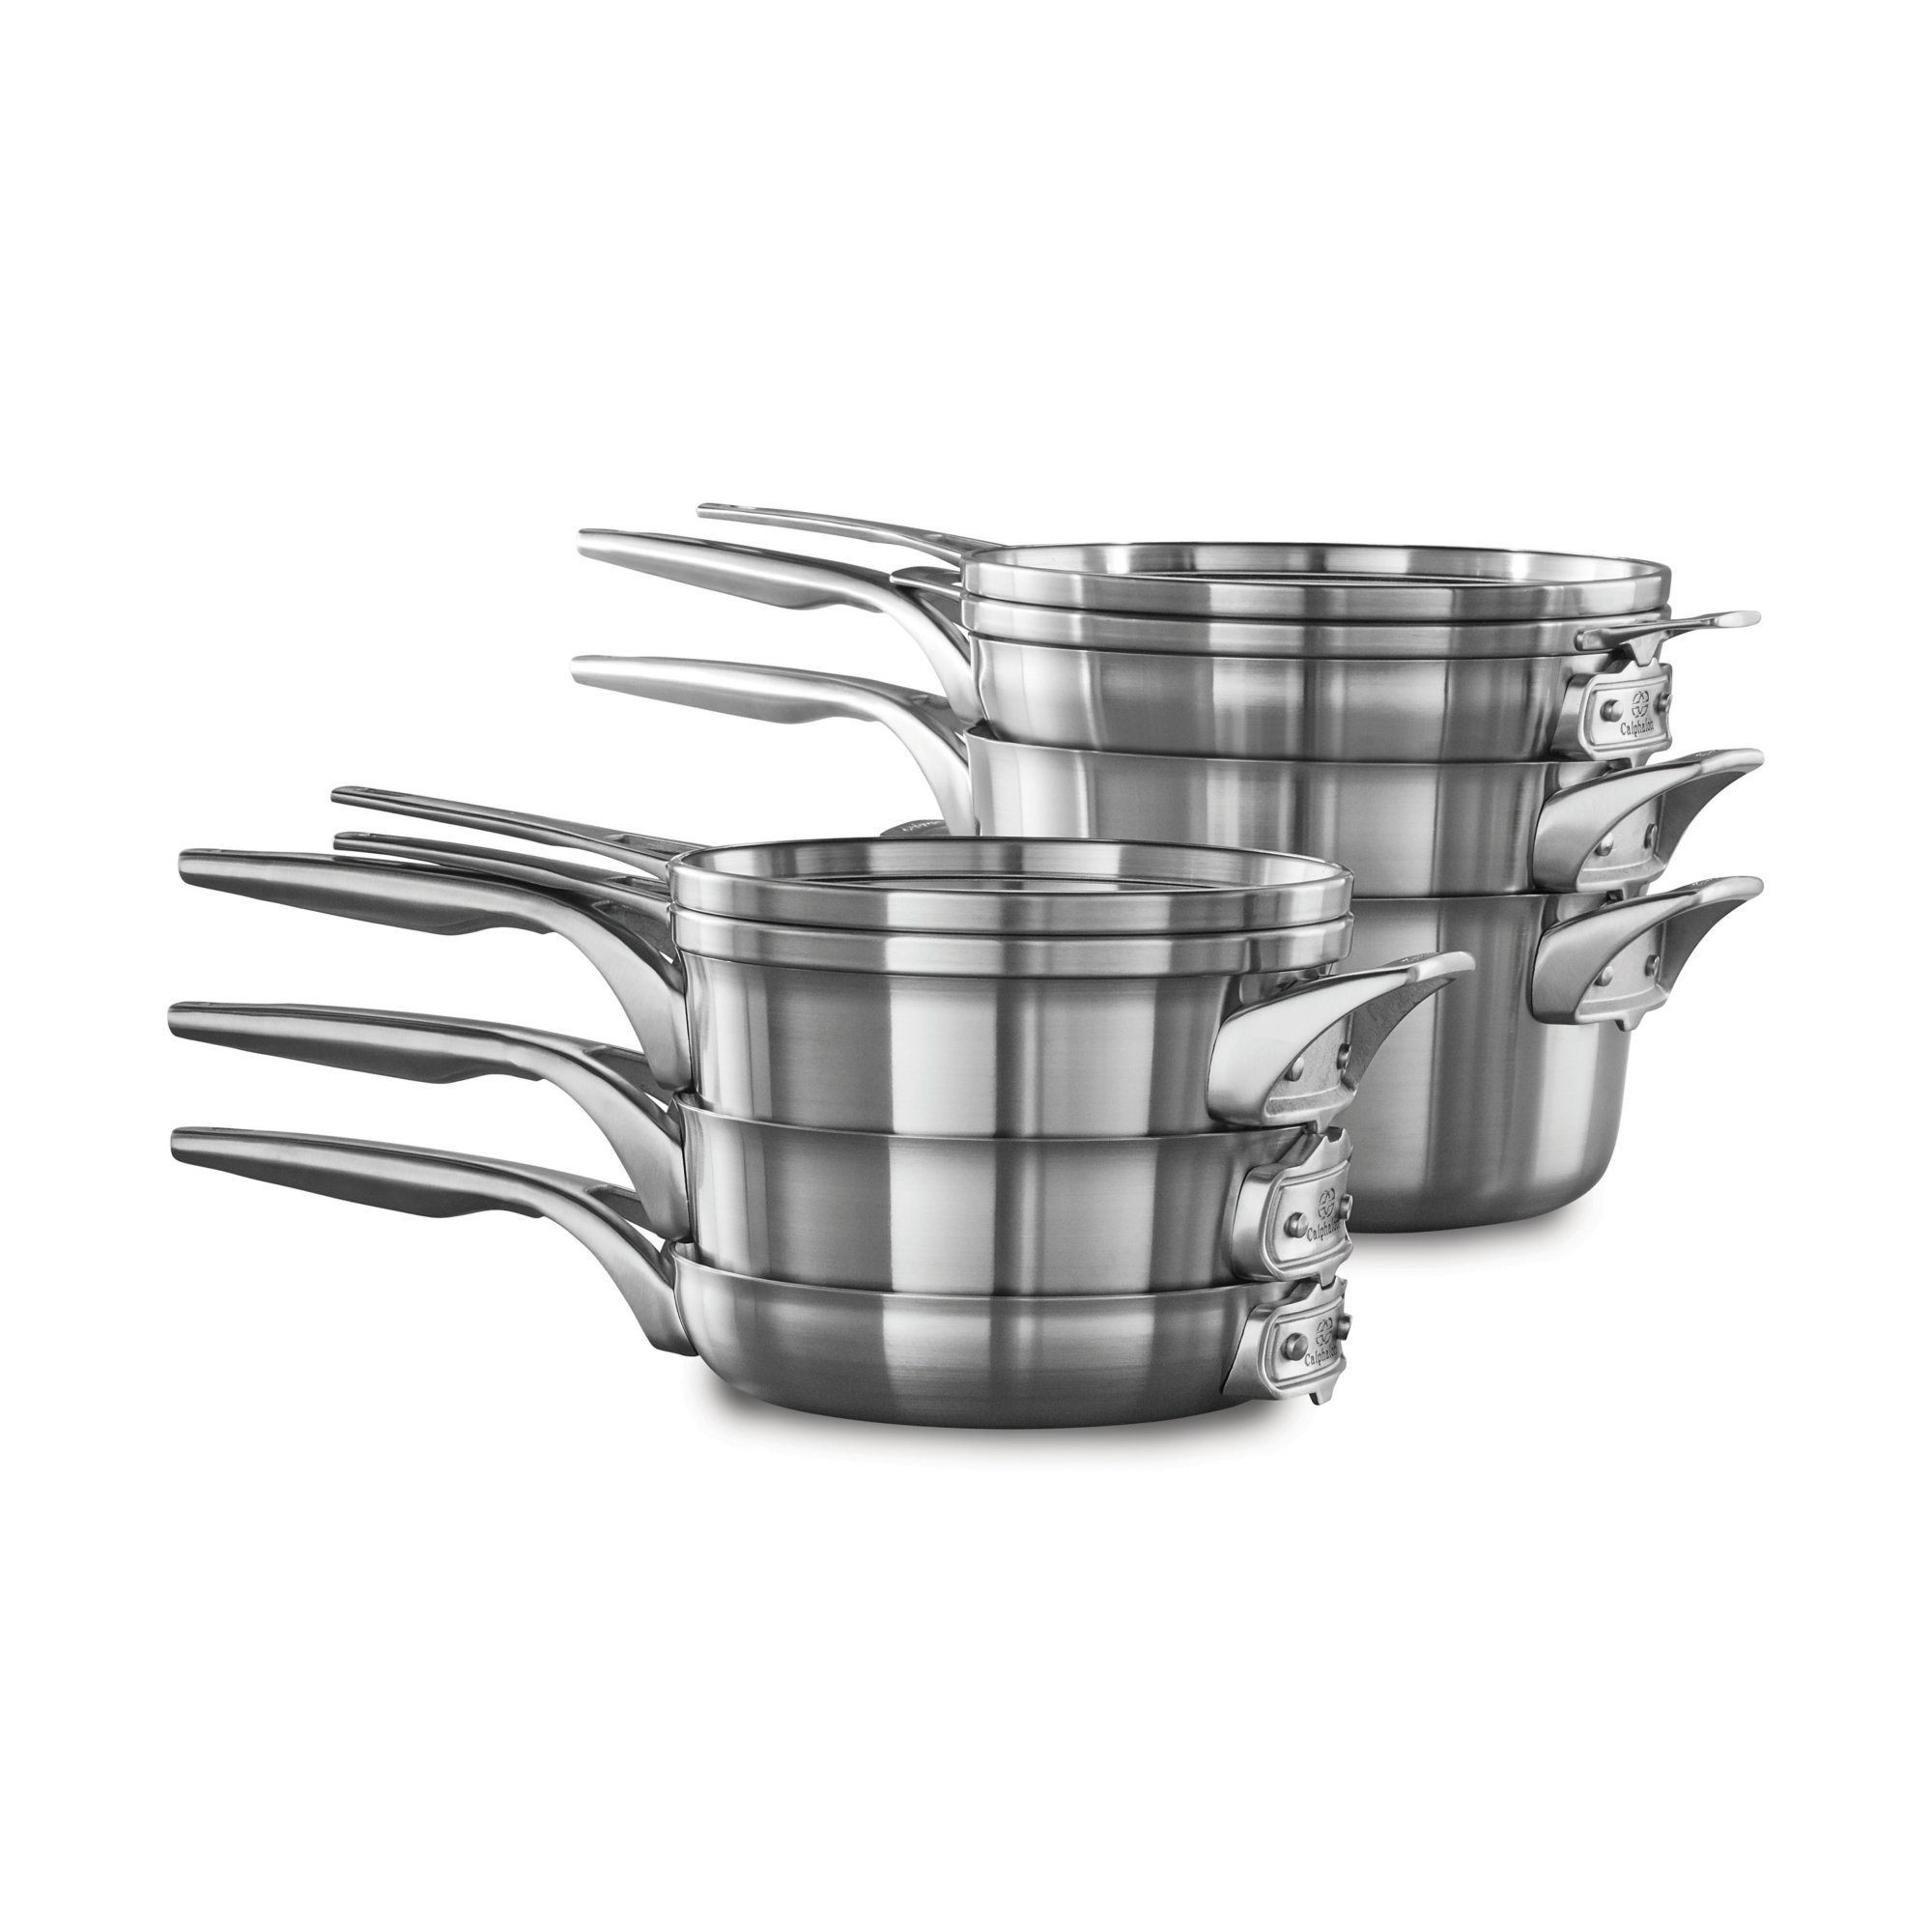 Calphalon Premier™ Space Saving Stainless Steel 10-Piece Cookware Set